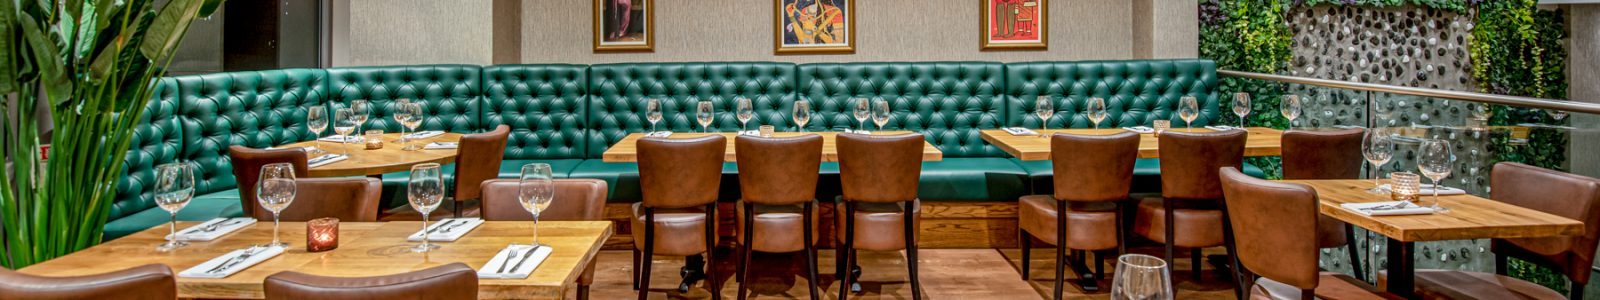 Fine Indian Dining Restaurant in London